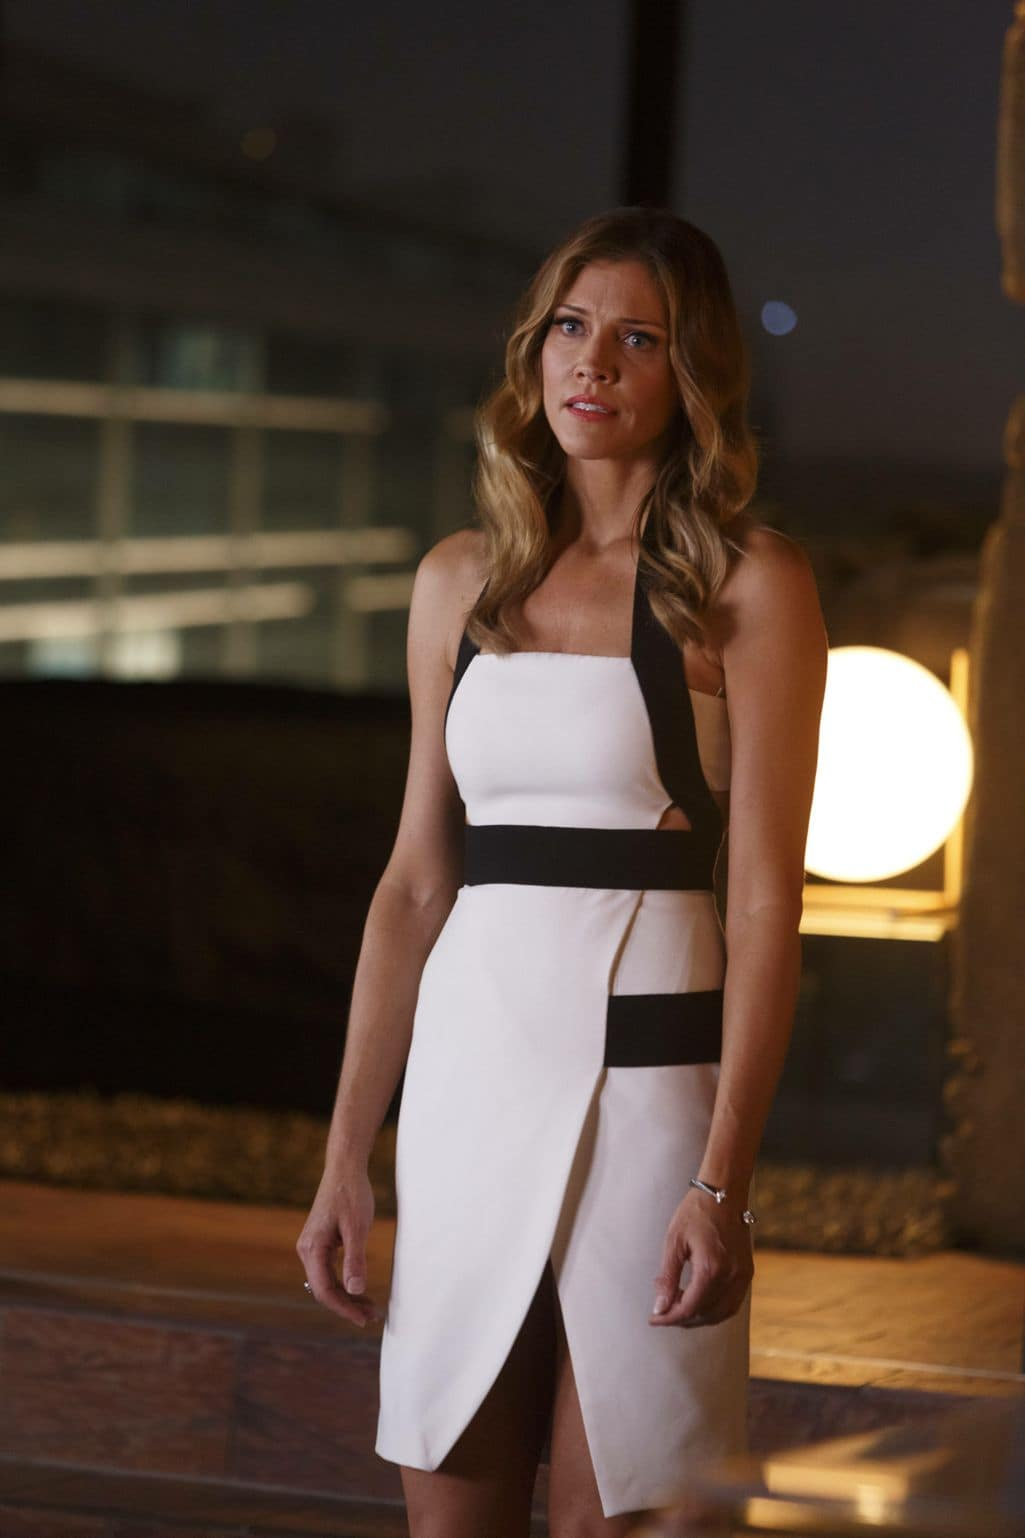 """LUCIFER: Tricia Helfer in the """"Sin-Eater"""" episode of LUCIFER airing Monday, Oct. 10 (9:01-10:00 PM ET/PT) on FOX. ©2016 Fox Broadcasting Co. Cr: Michael Courtney/FOX."""